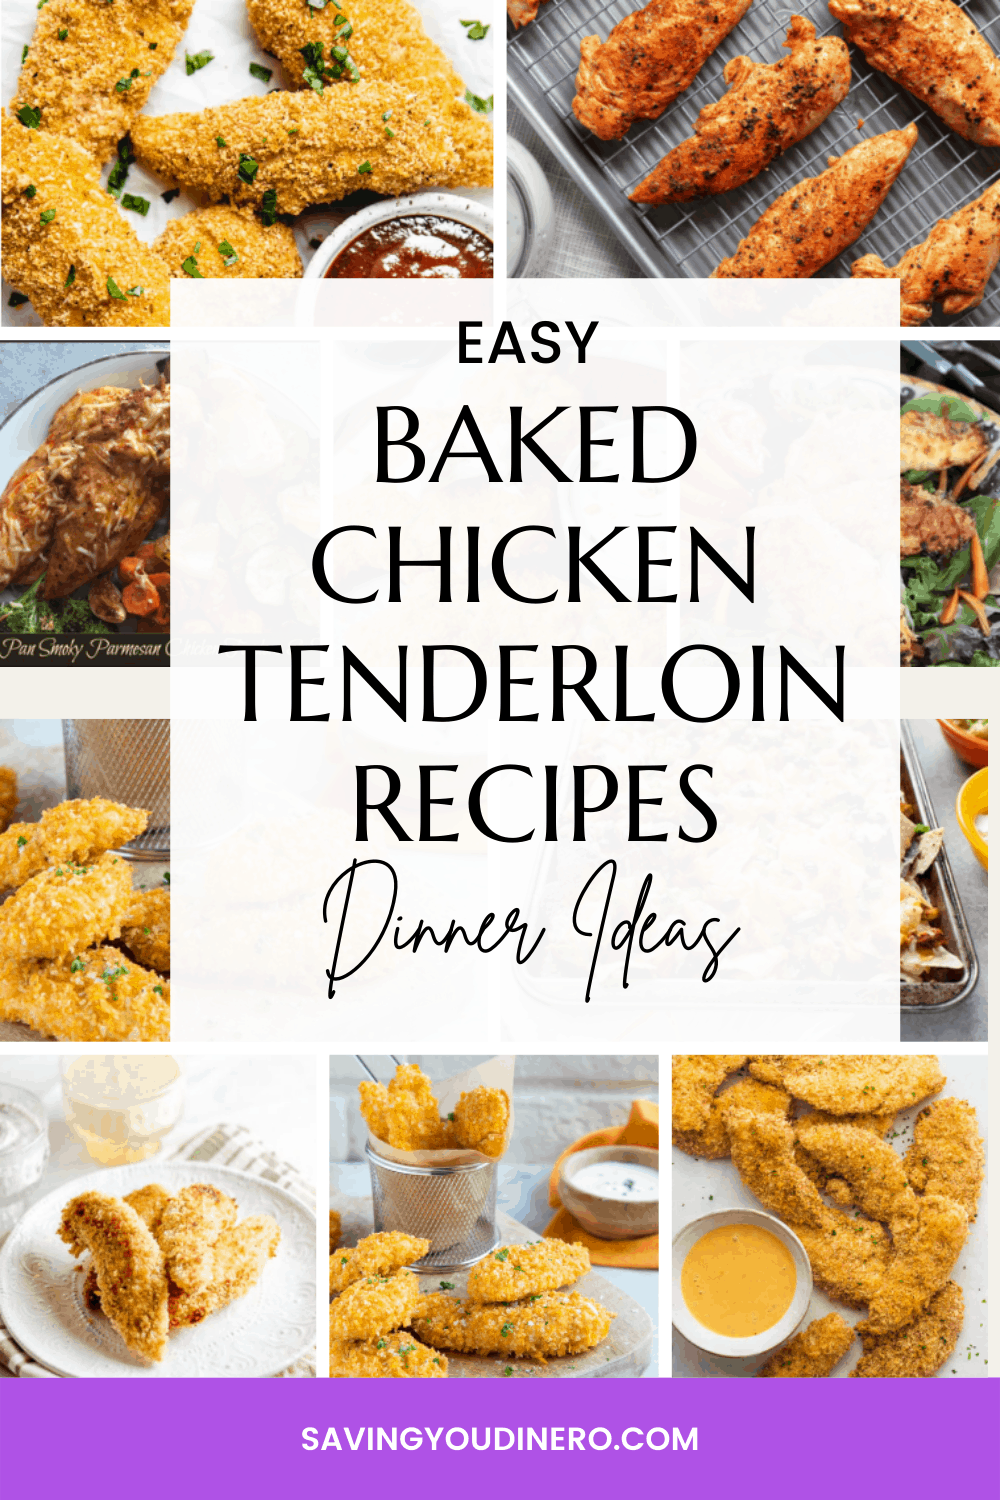 Need an easy dinner idea? Check out these baked chicken tenderloin recipes! With just a few ingredients you can have a delicious dinner!